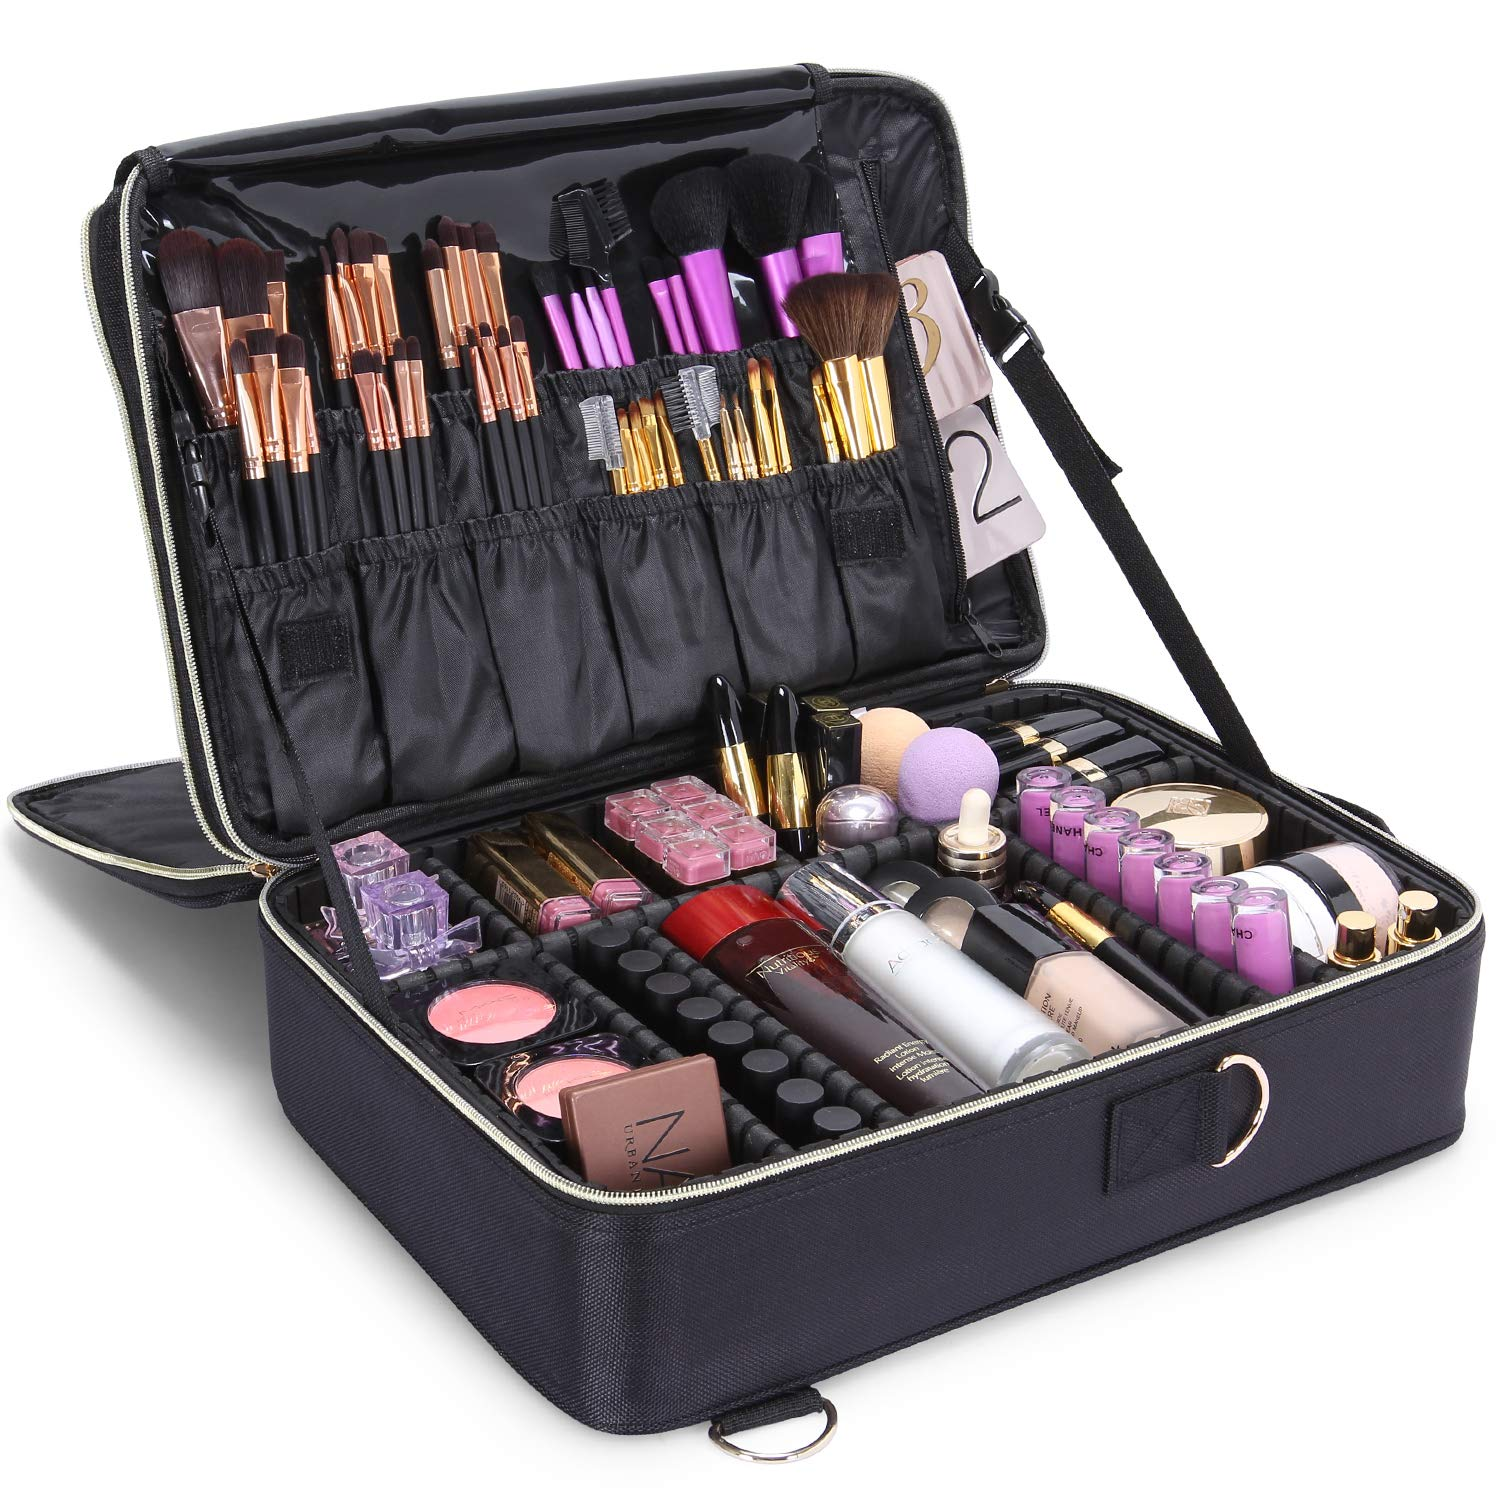 ea7411342c4a Lifwit 3-Layers Professional Makeup Bag Backpack Train Case with Adjustable  Divider, Large 3-in-1 Artist Travel Cosmetic Organizer Box Waterproof ...